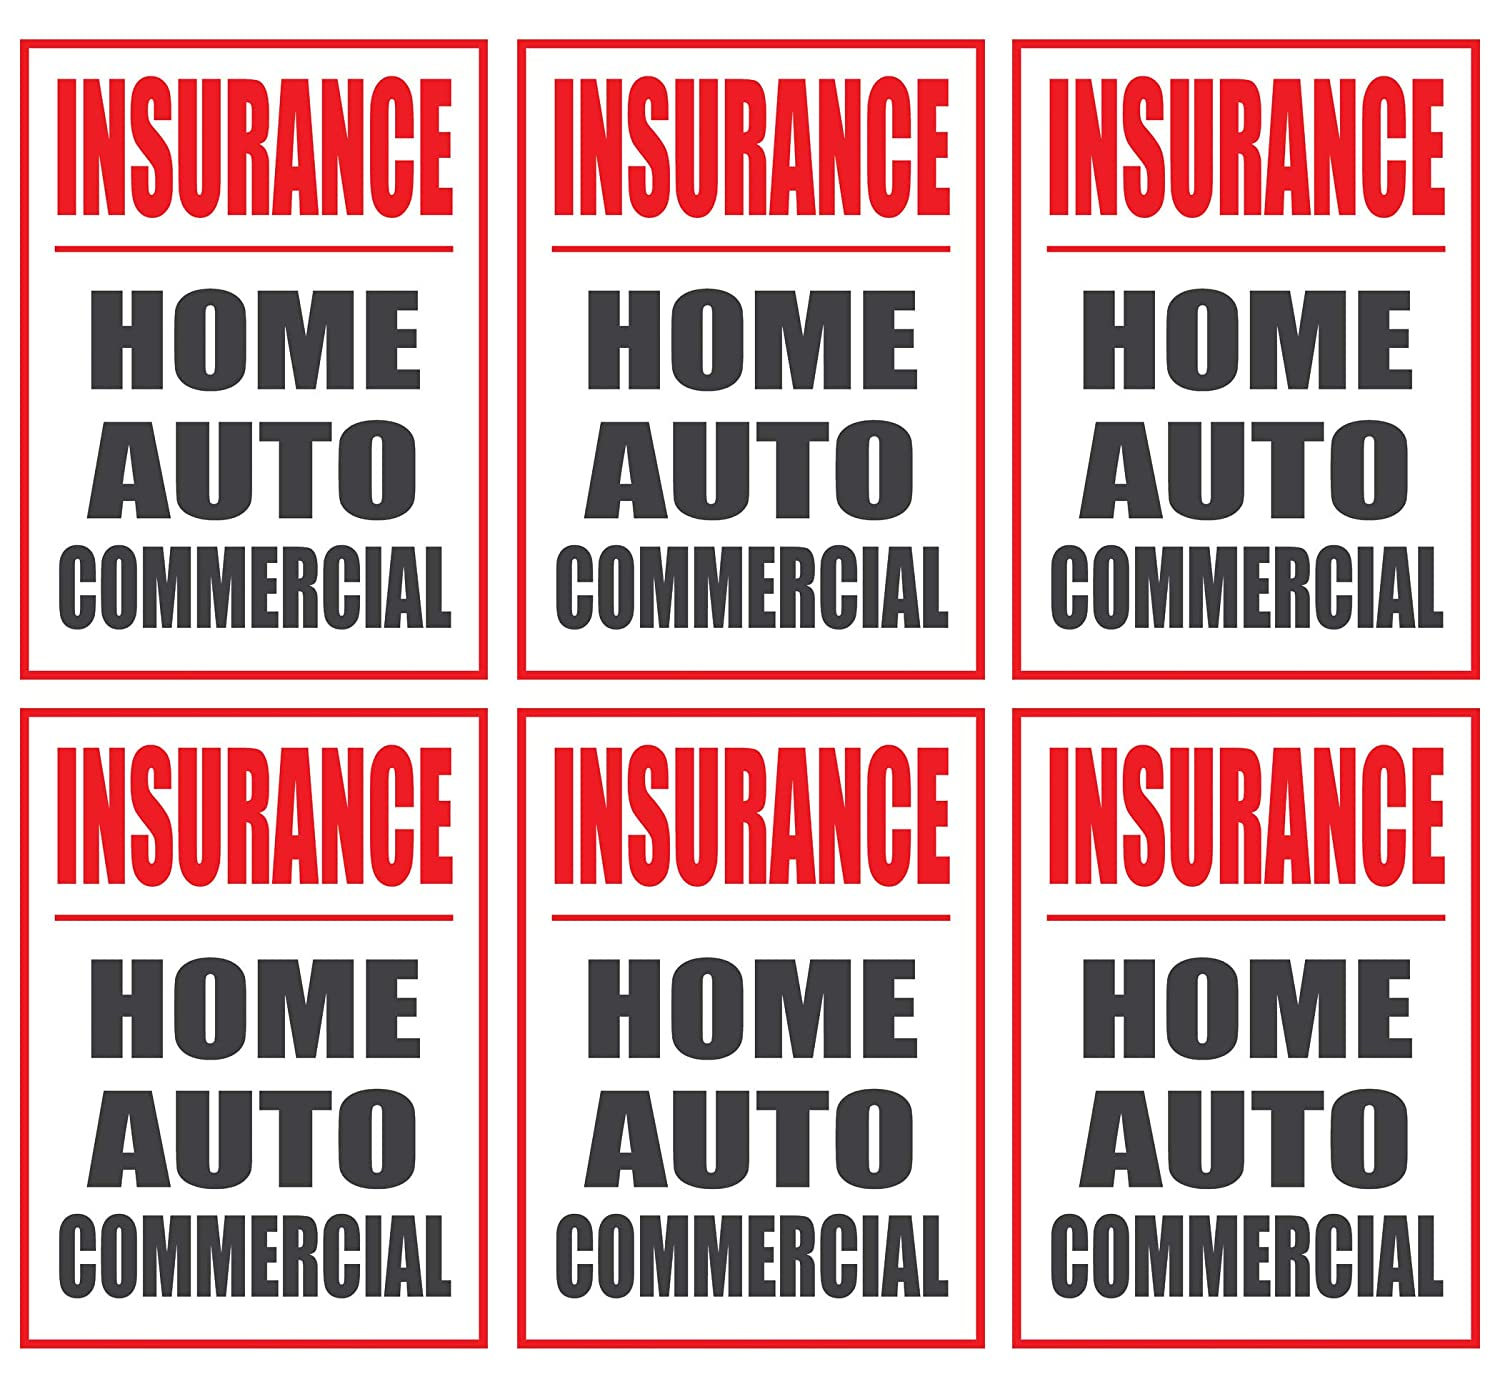 18w x 24h Large Store Window//Wall Retail Display Paper Signs Insurance Home Auto Commercial Red and Black on White 6 Pack